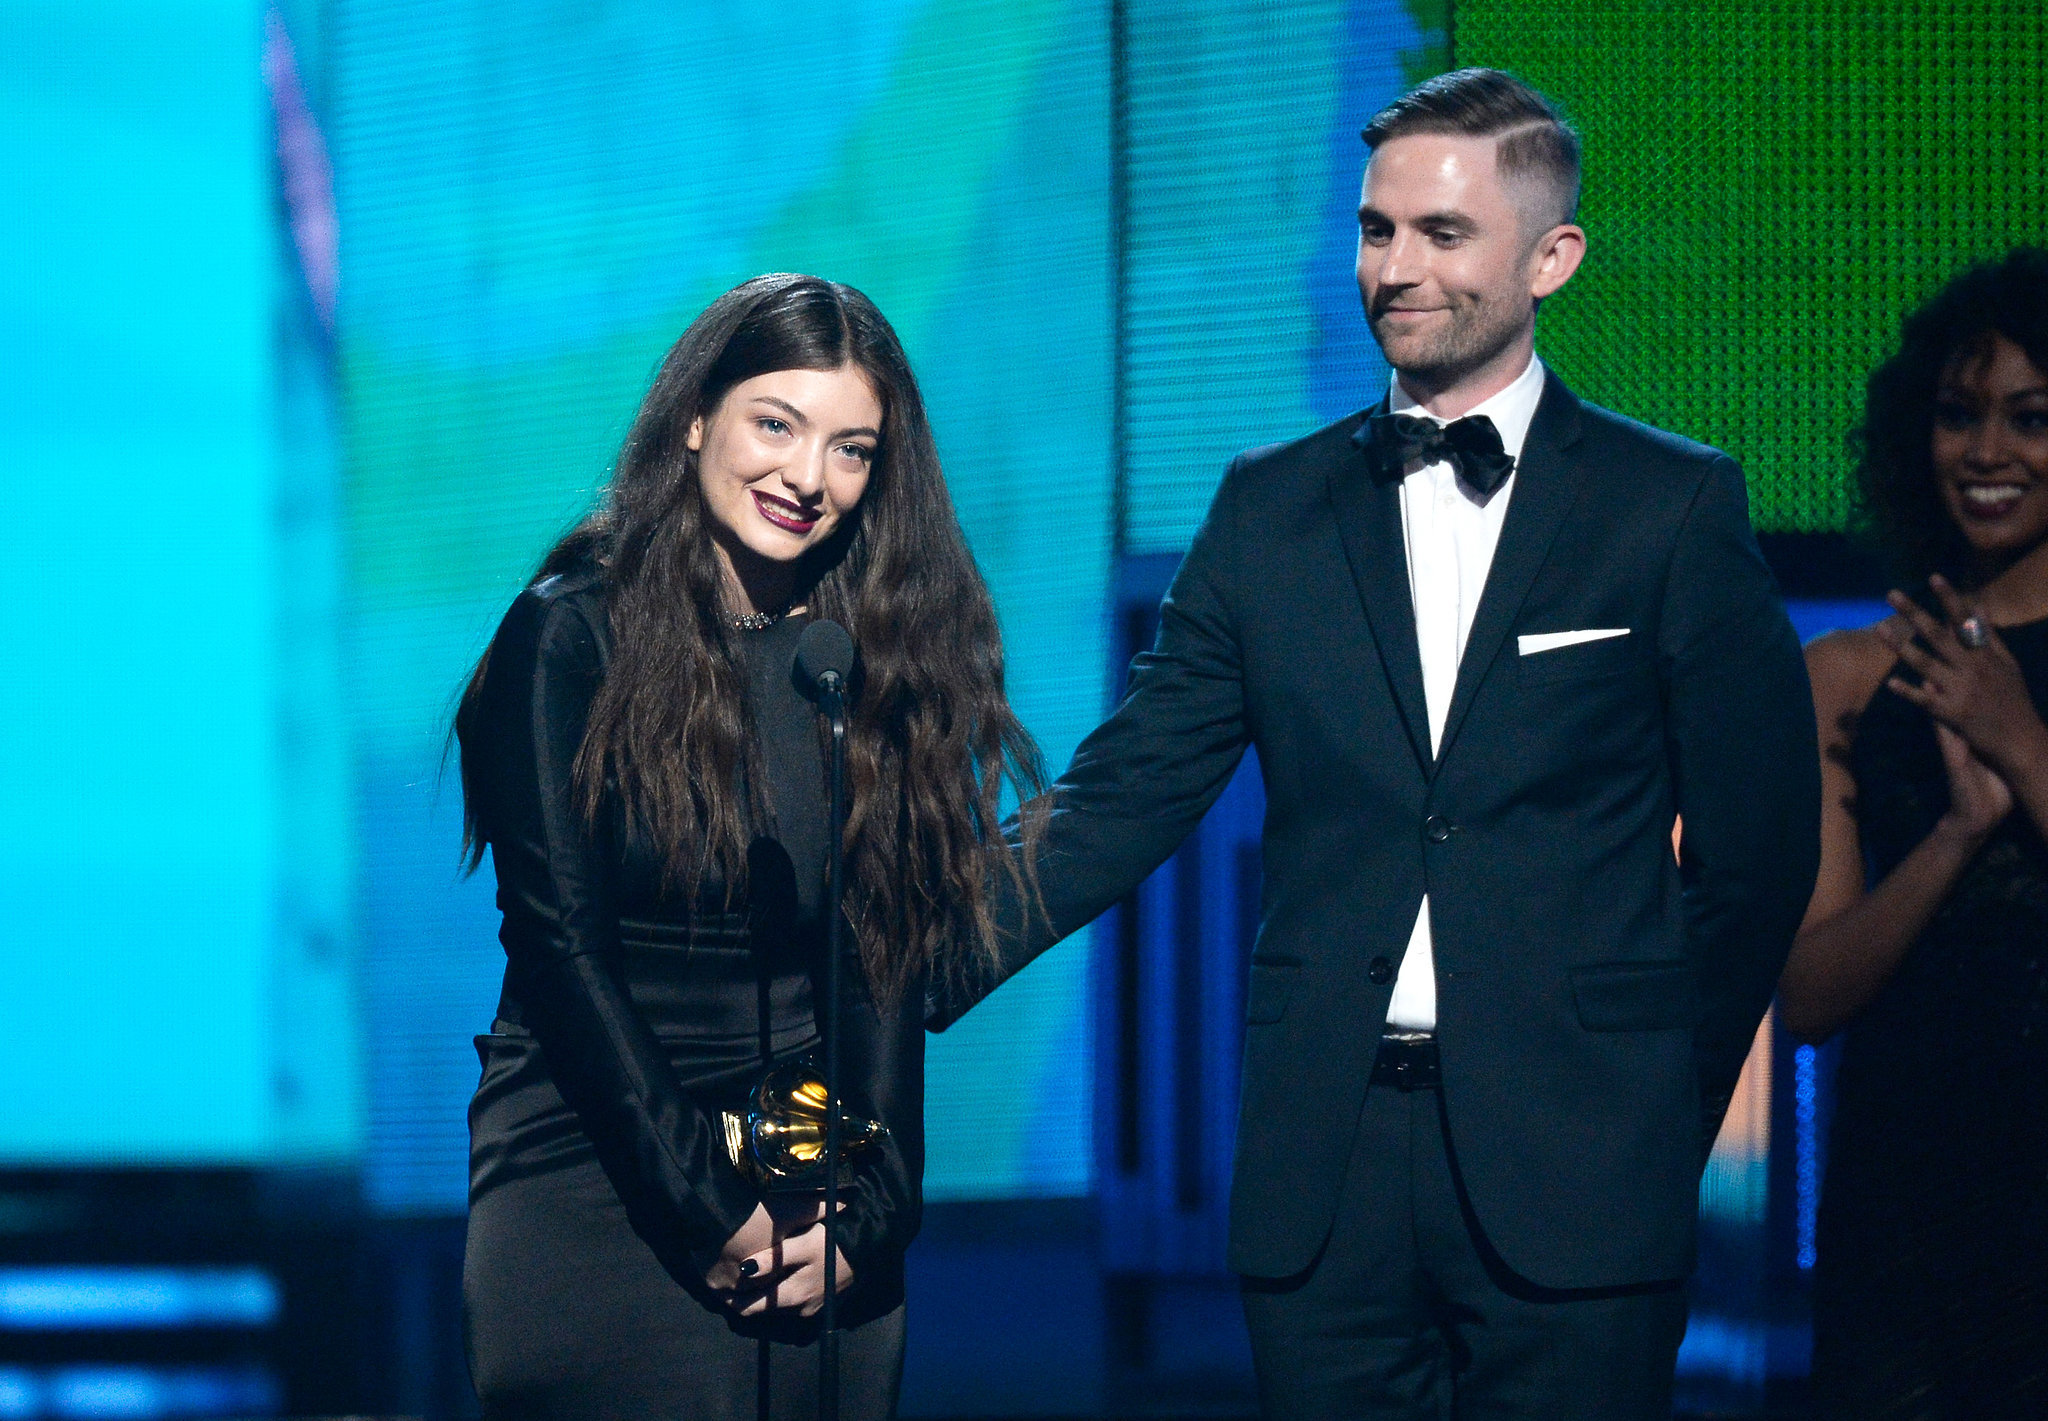 Lorde was adorable as she accepted her second award of the night.